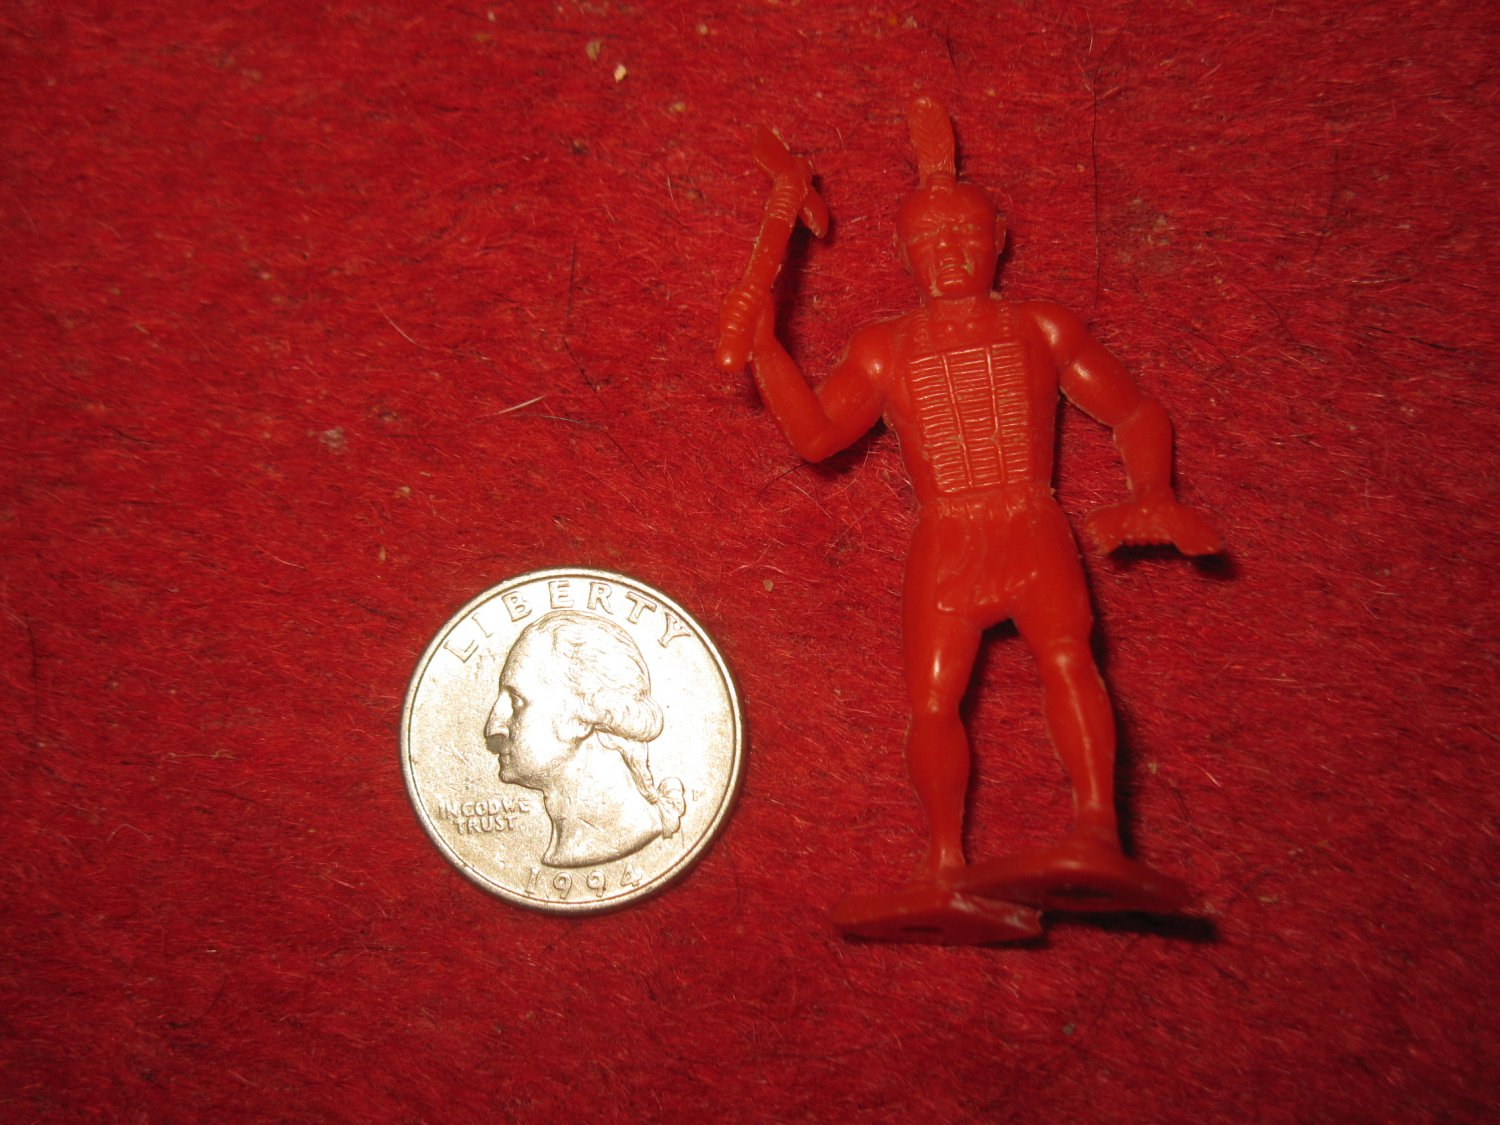 Vintage 1950's Miniature Playset figure: Rare Red Indian w/ Tomahawk & Scalp